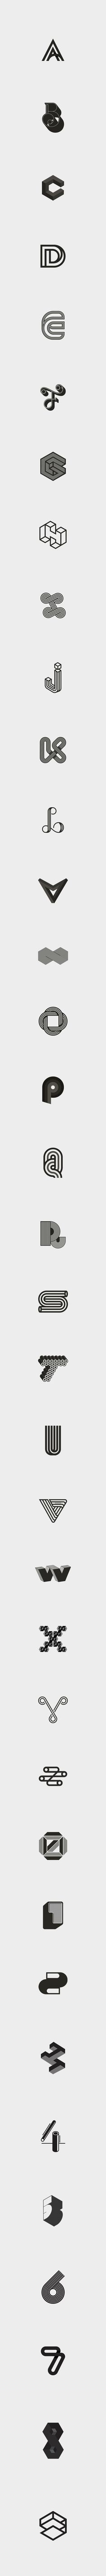 #36daysoftype on Behance